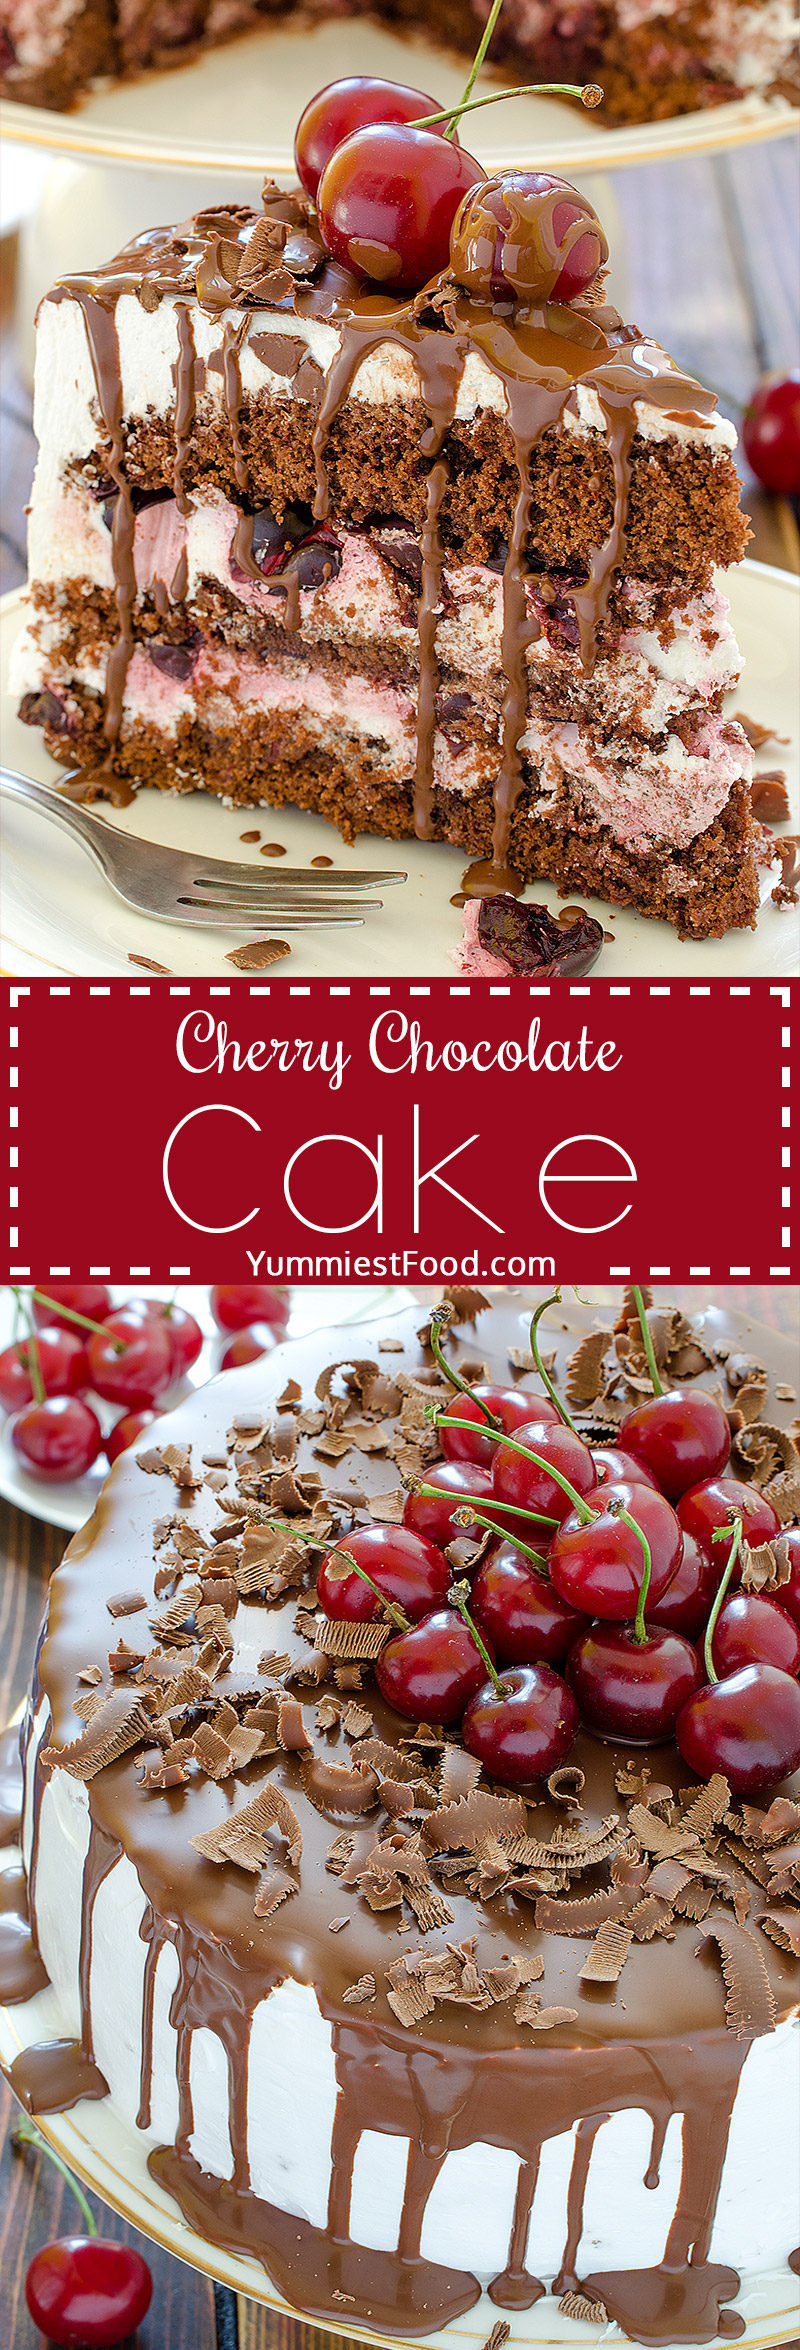 Cherry Chocolate Cake - Light, moist, refreshing and perfect cake for summer parties.